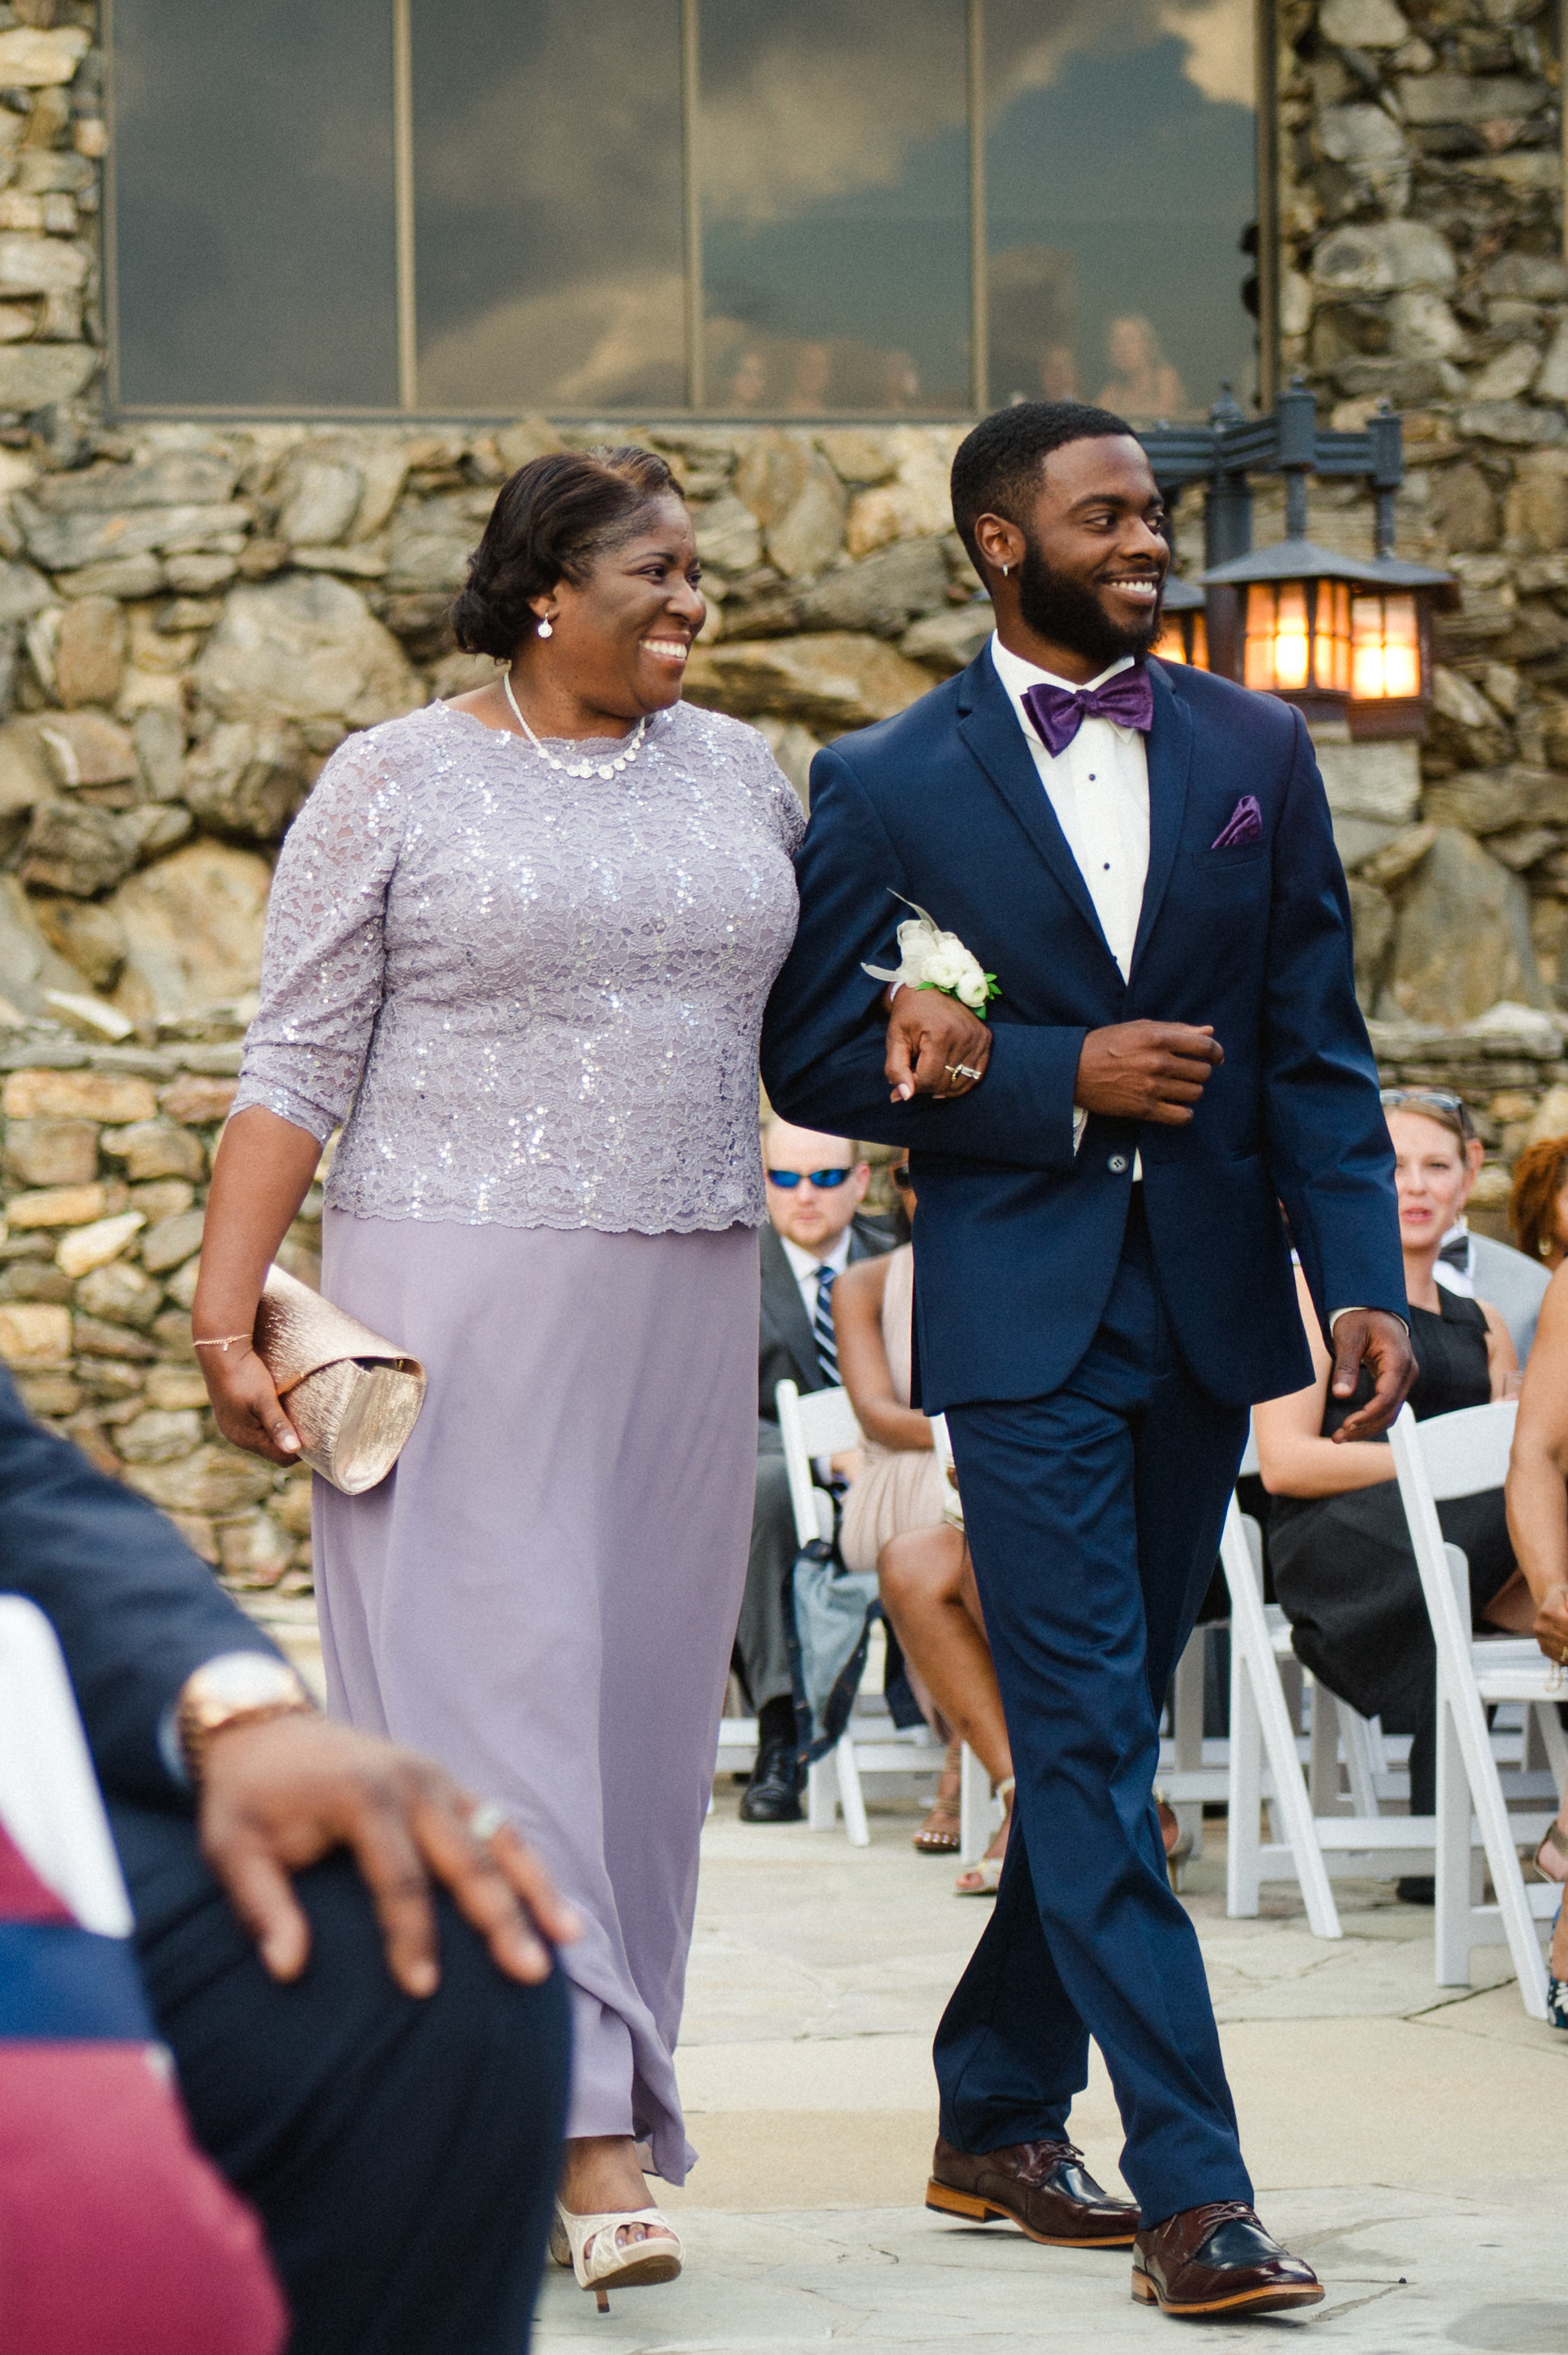 imani&chris|wedding|ceremony-14.jpg